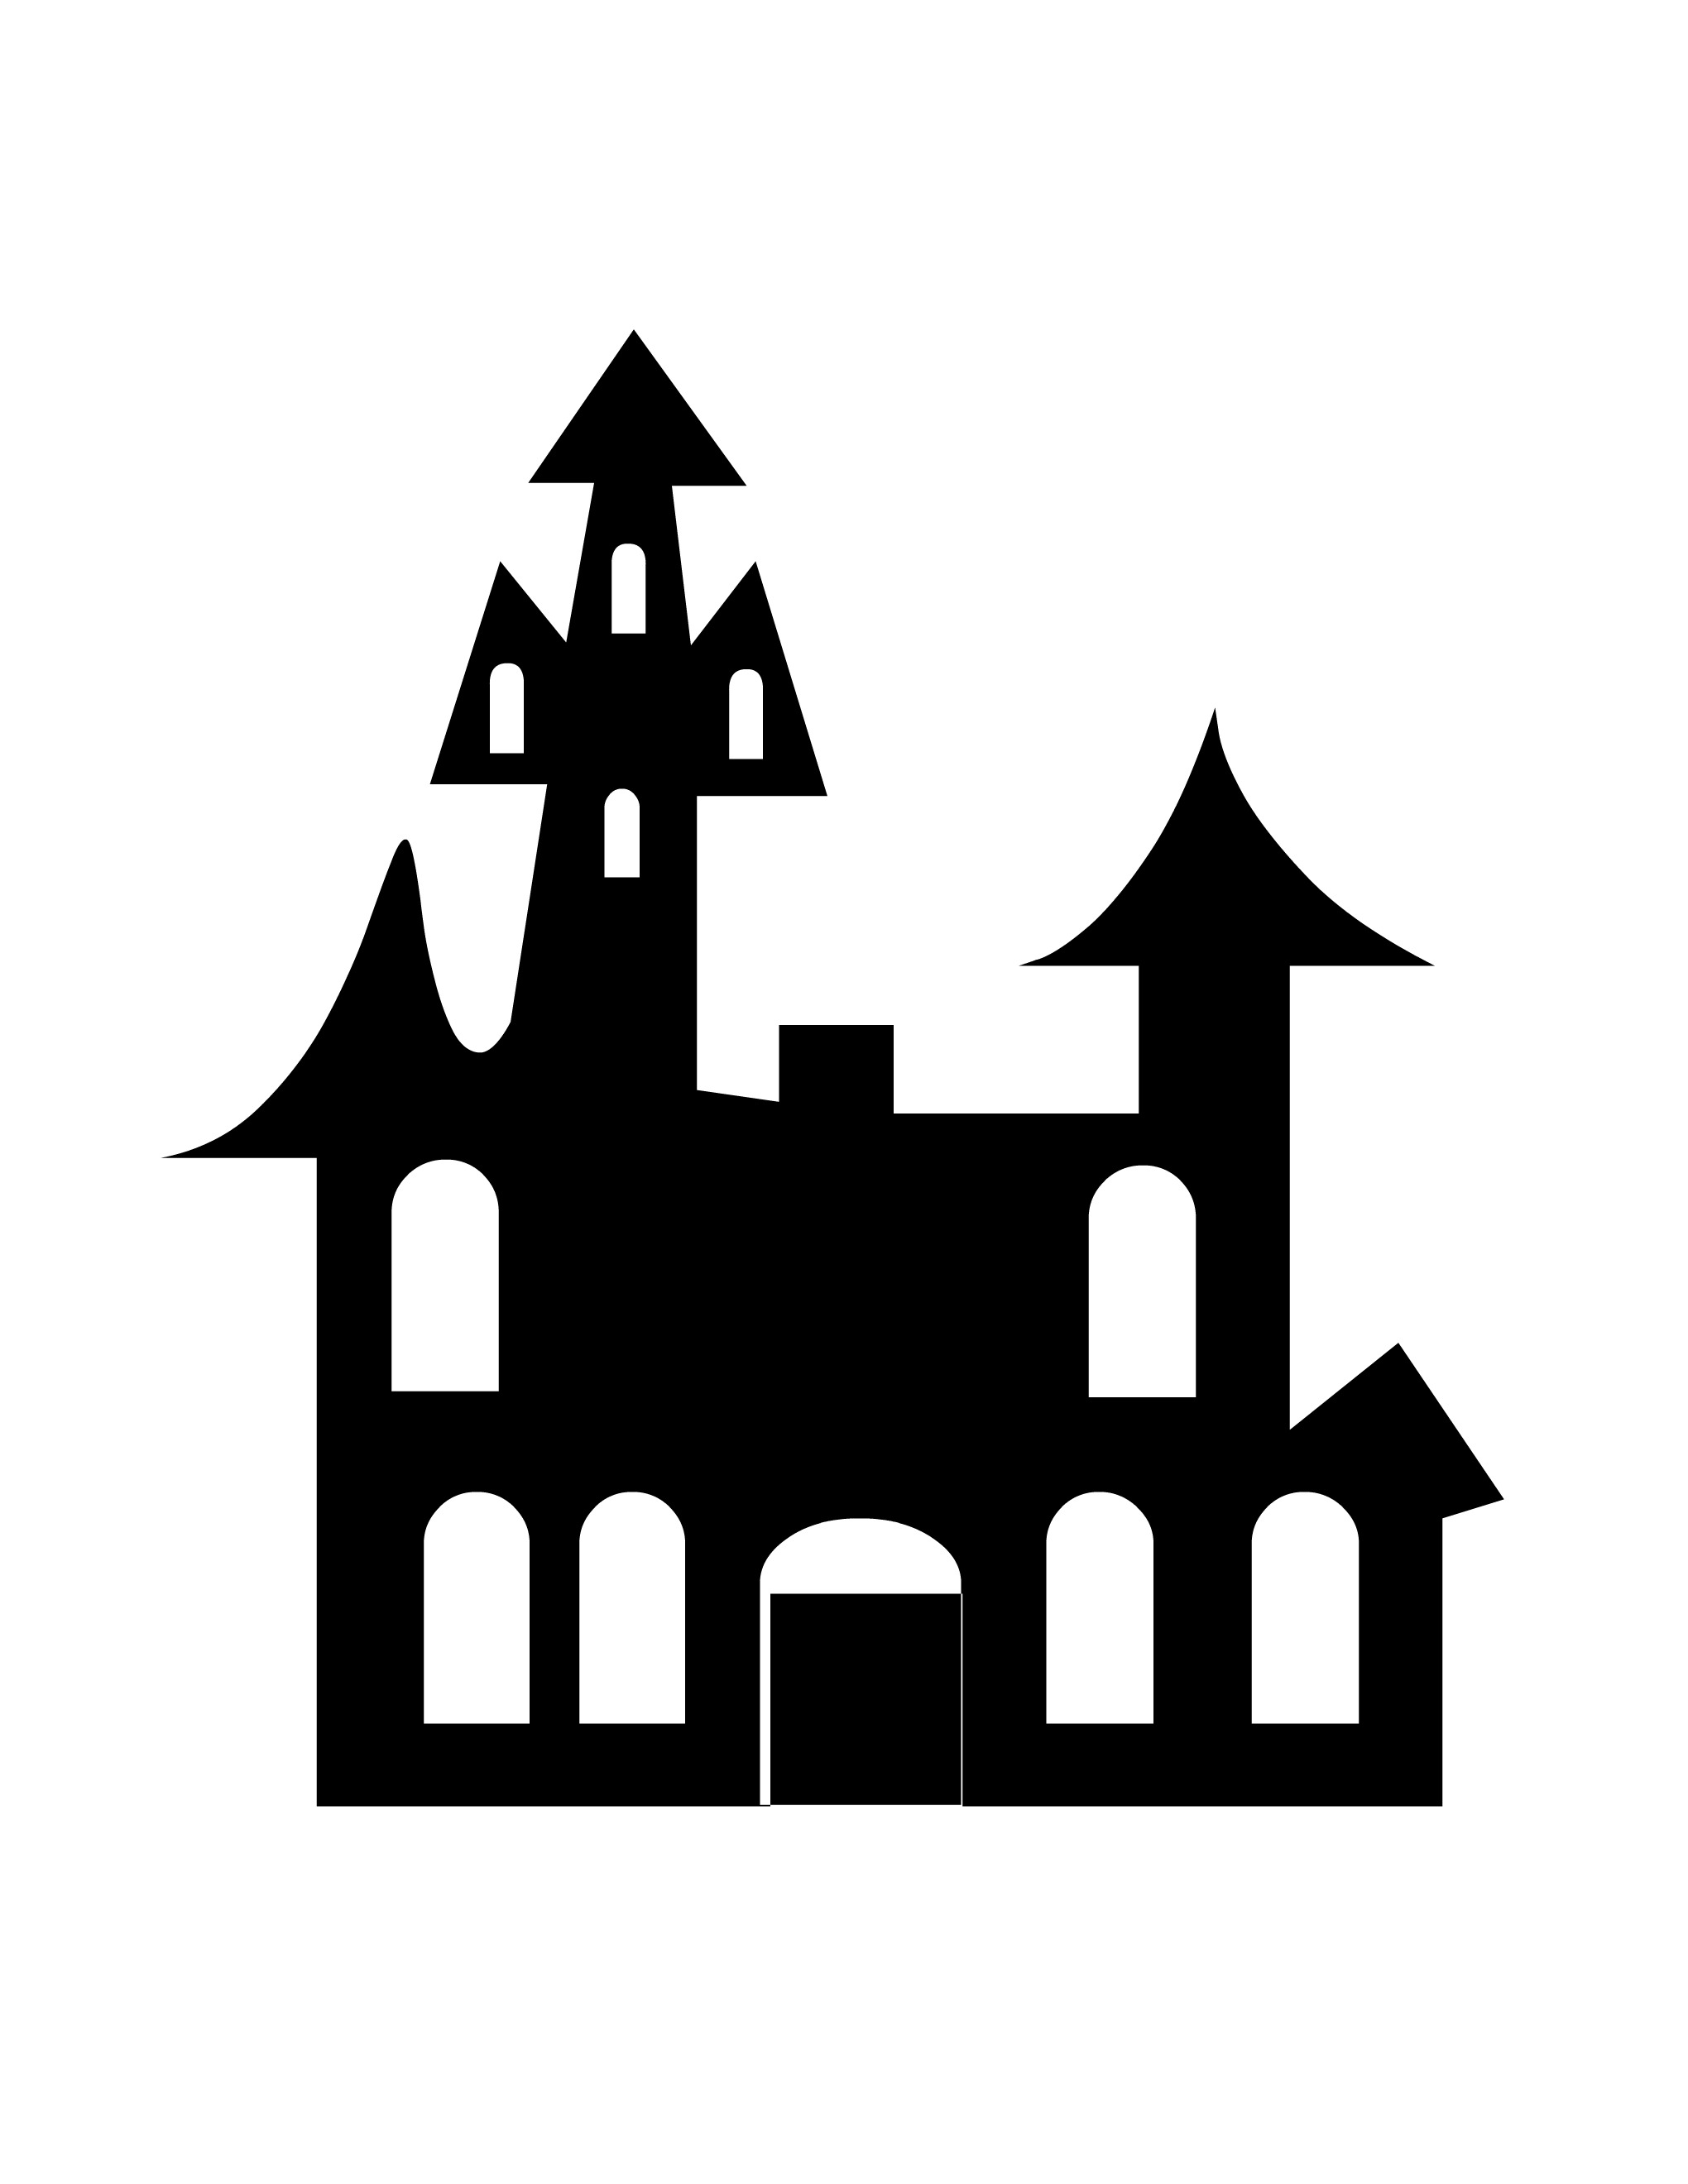 House Silhouette   Clipart Best